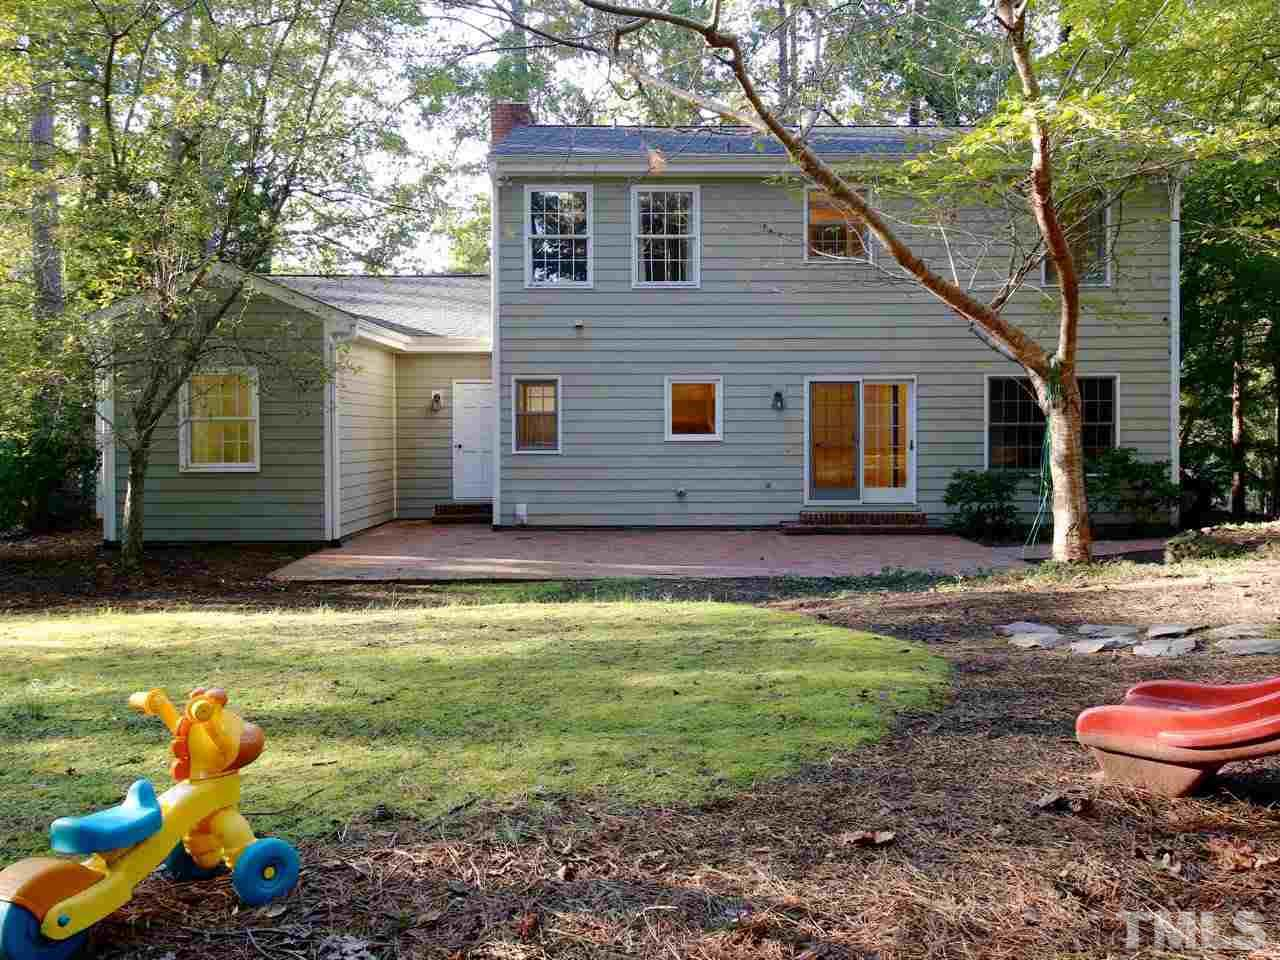 The back yard is large and level. There is a detached storage shed, a swing set, and a slide. What more do you really need?